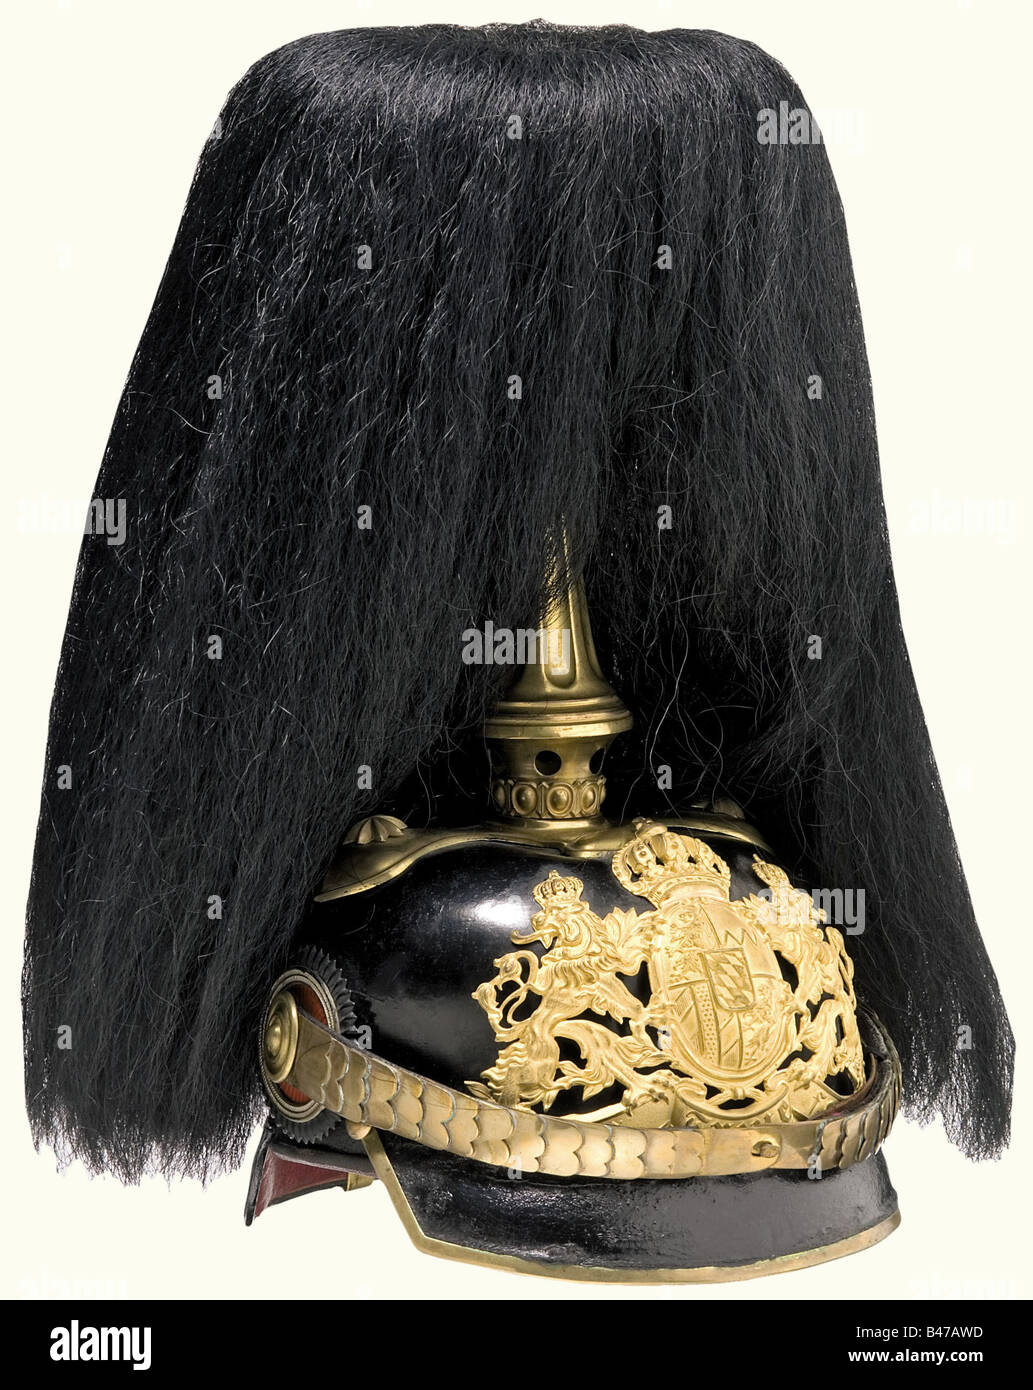 A model 1886/97 officer's helmet, Bavaria, Logistic Units Black lacquered leather skull. Frosted, gold-plated - Stock Image